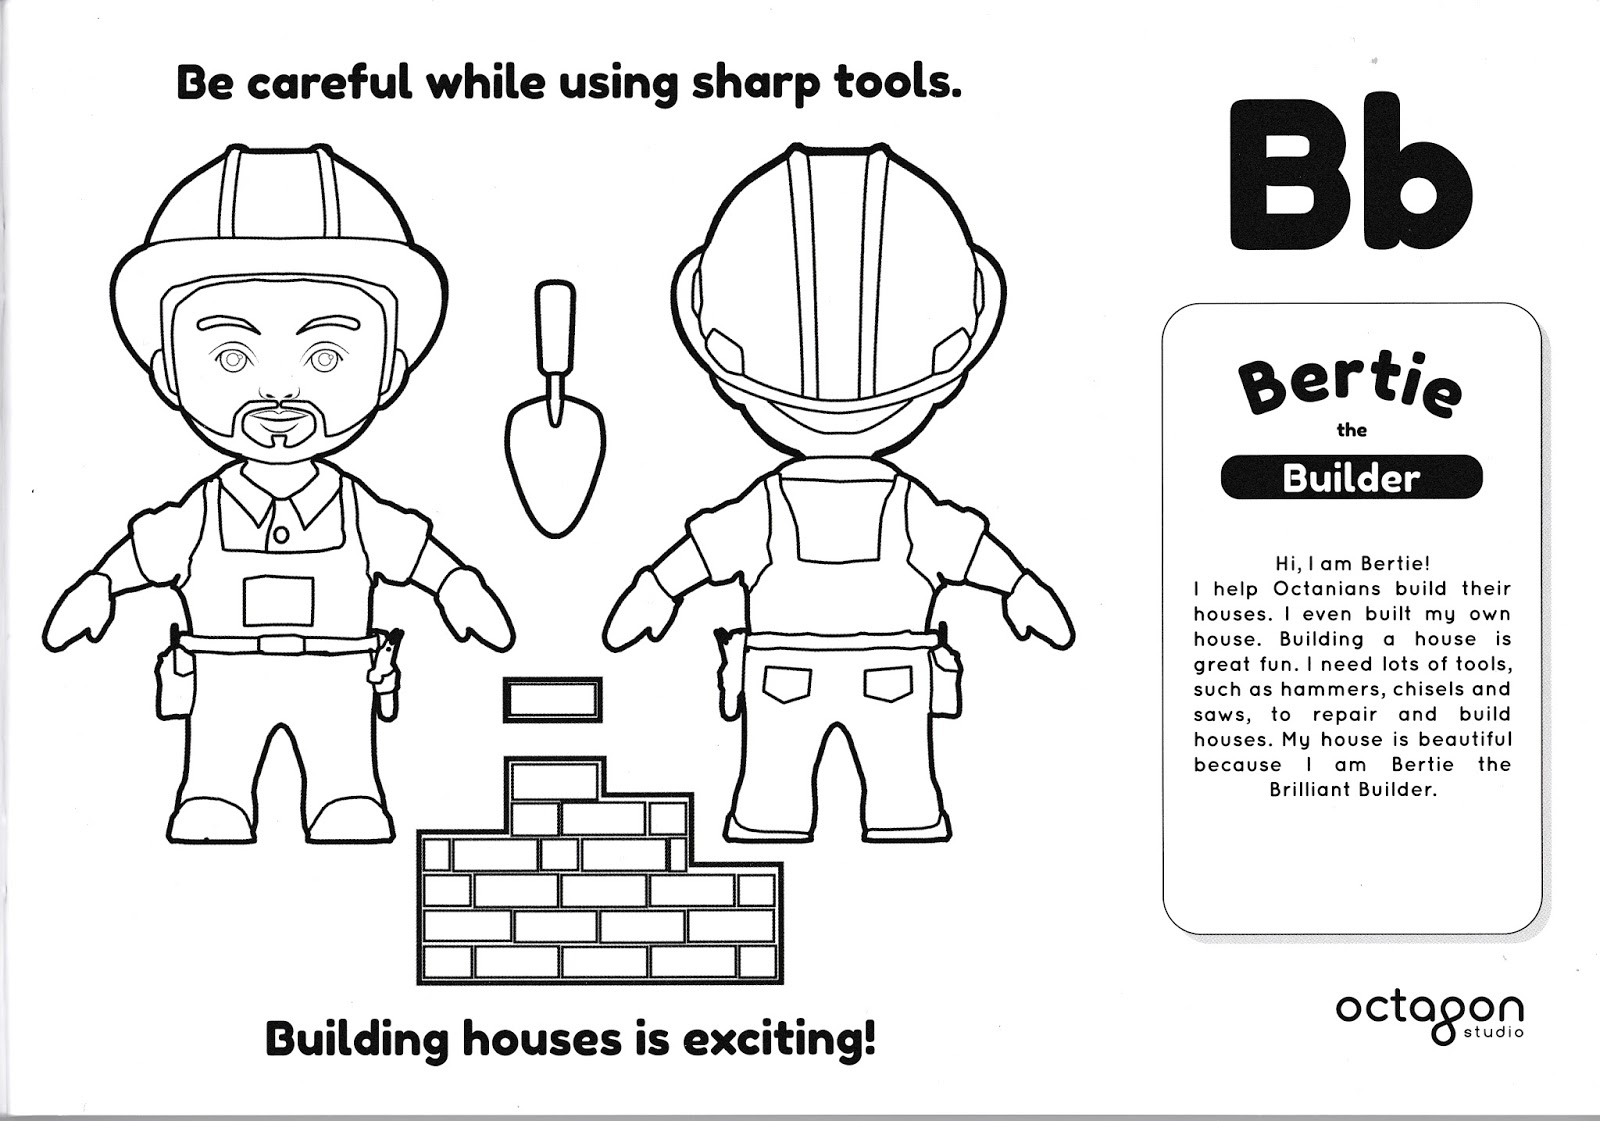 Augmented reality coloring pages ~ Augmented Reality (AR) -Octaland 4D+ Color Me - Weekend Treat